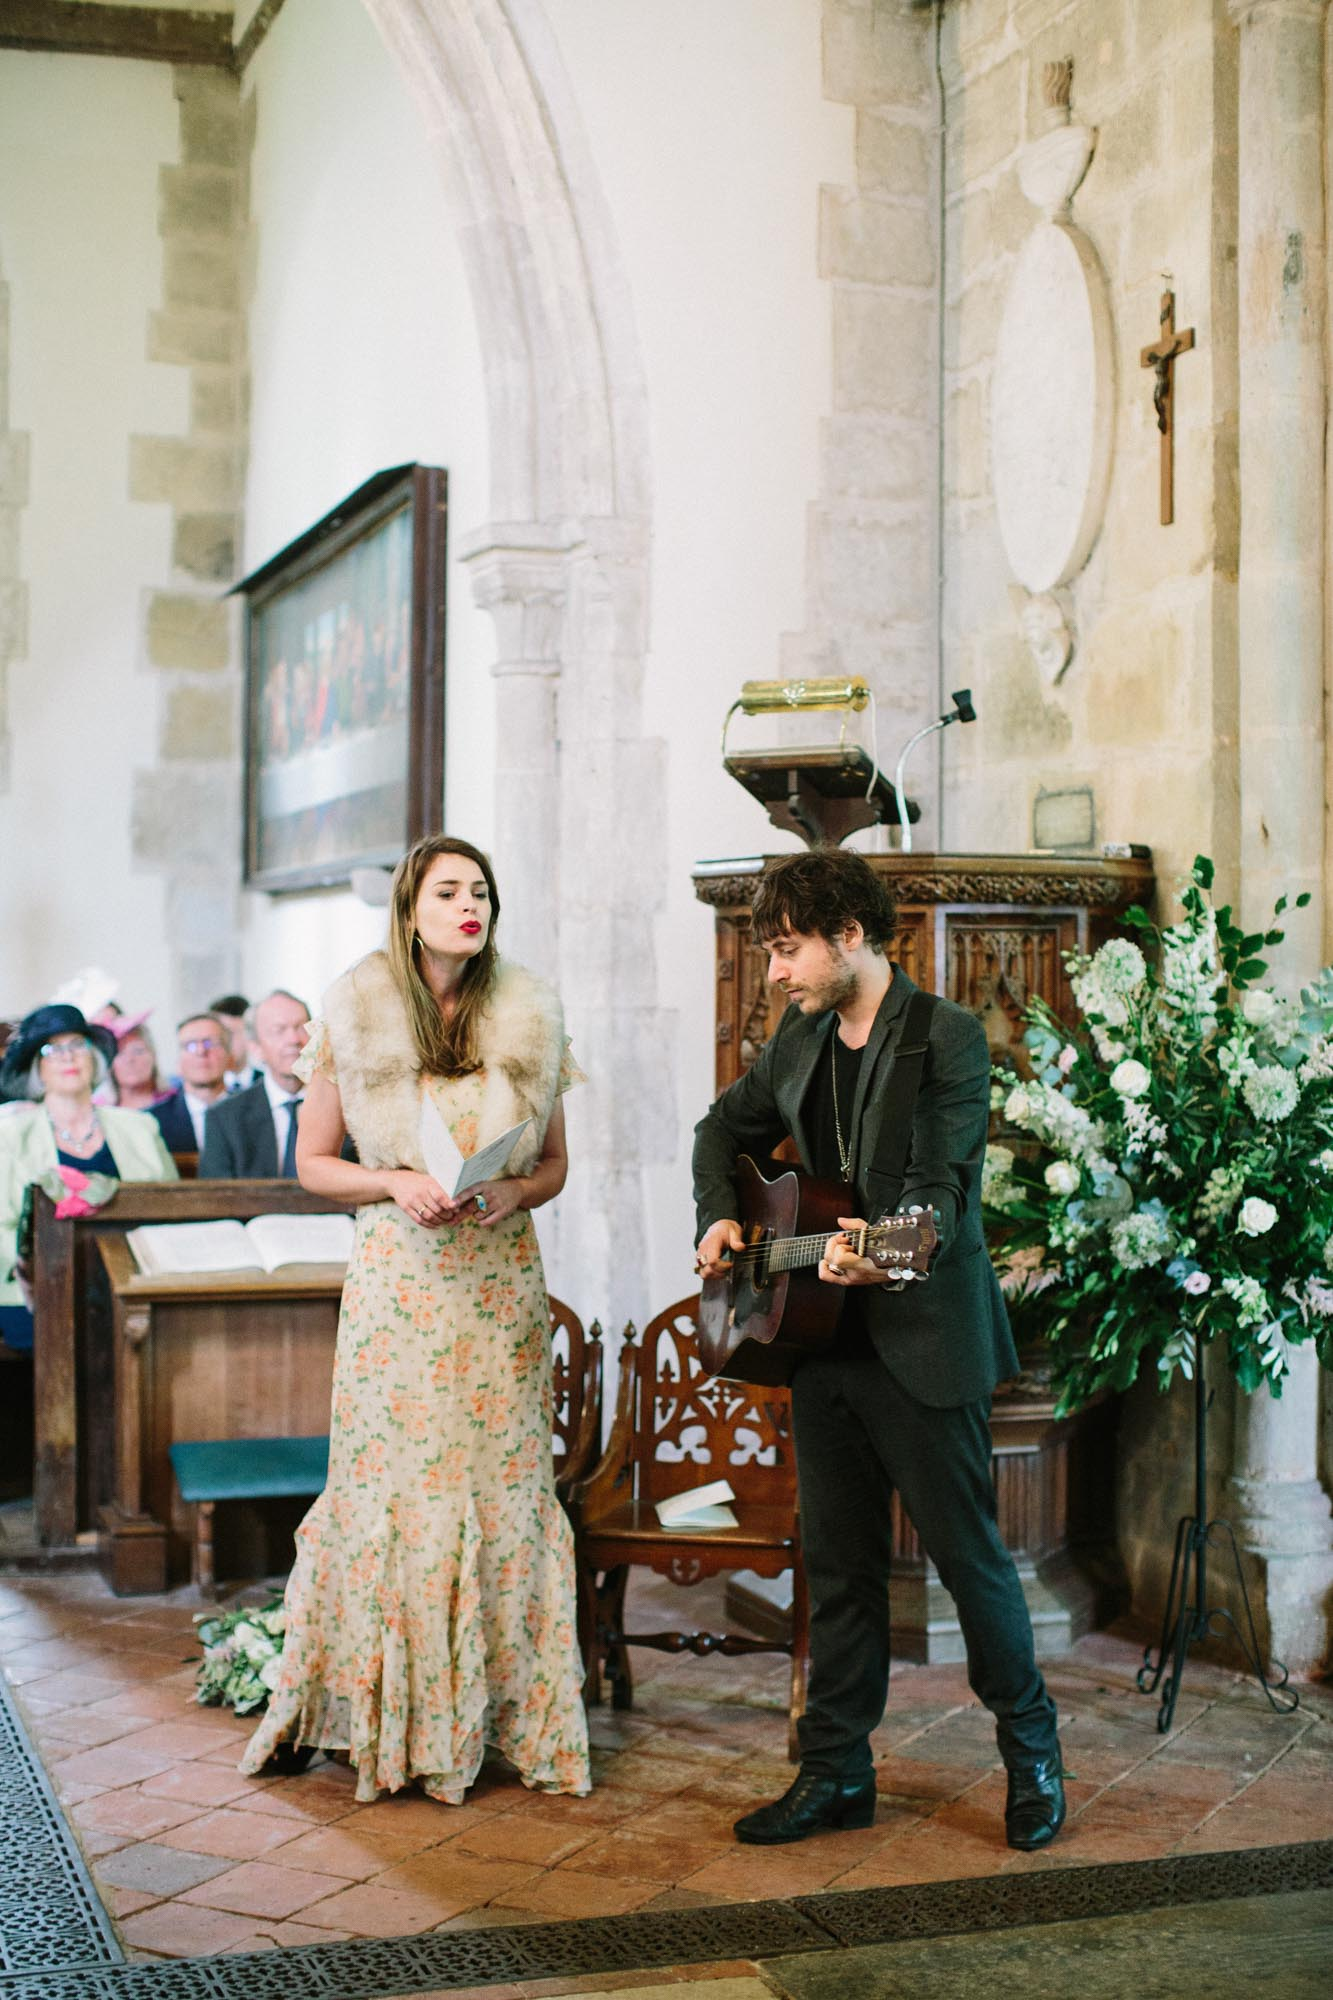 Acoustic singers during wedding ceremony